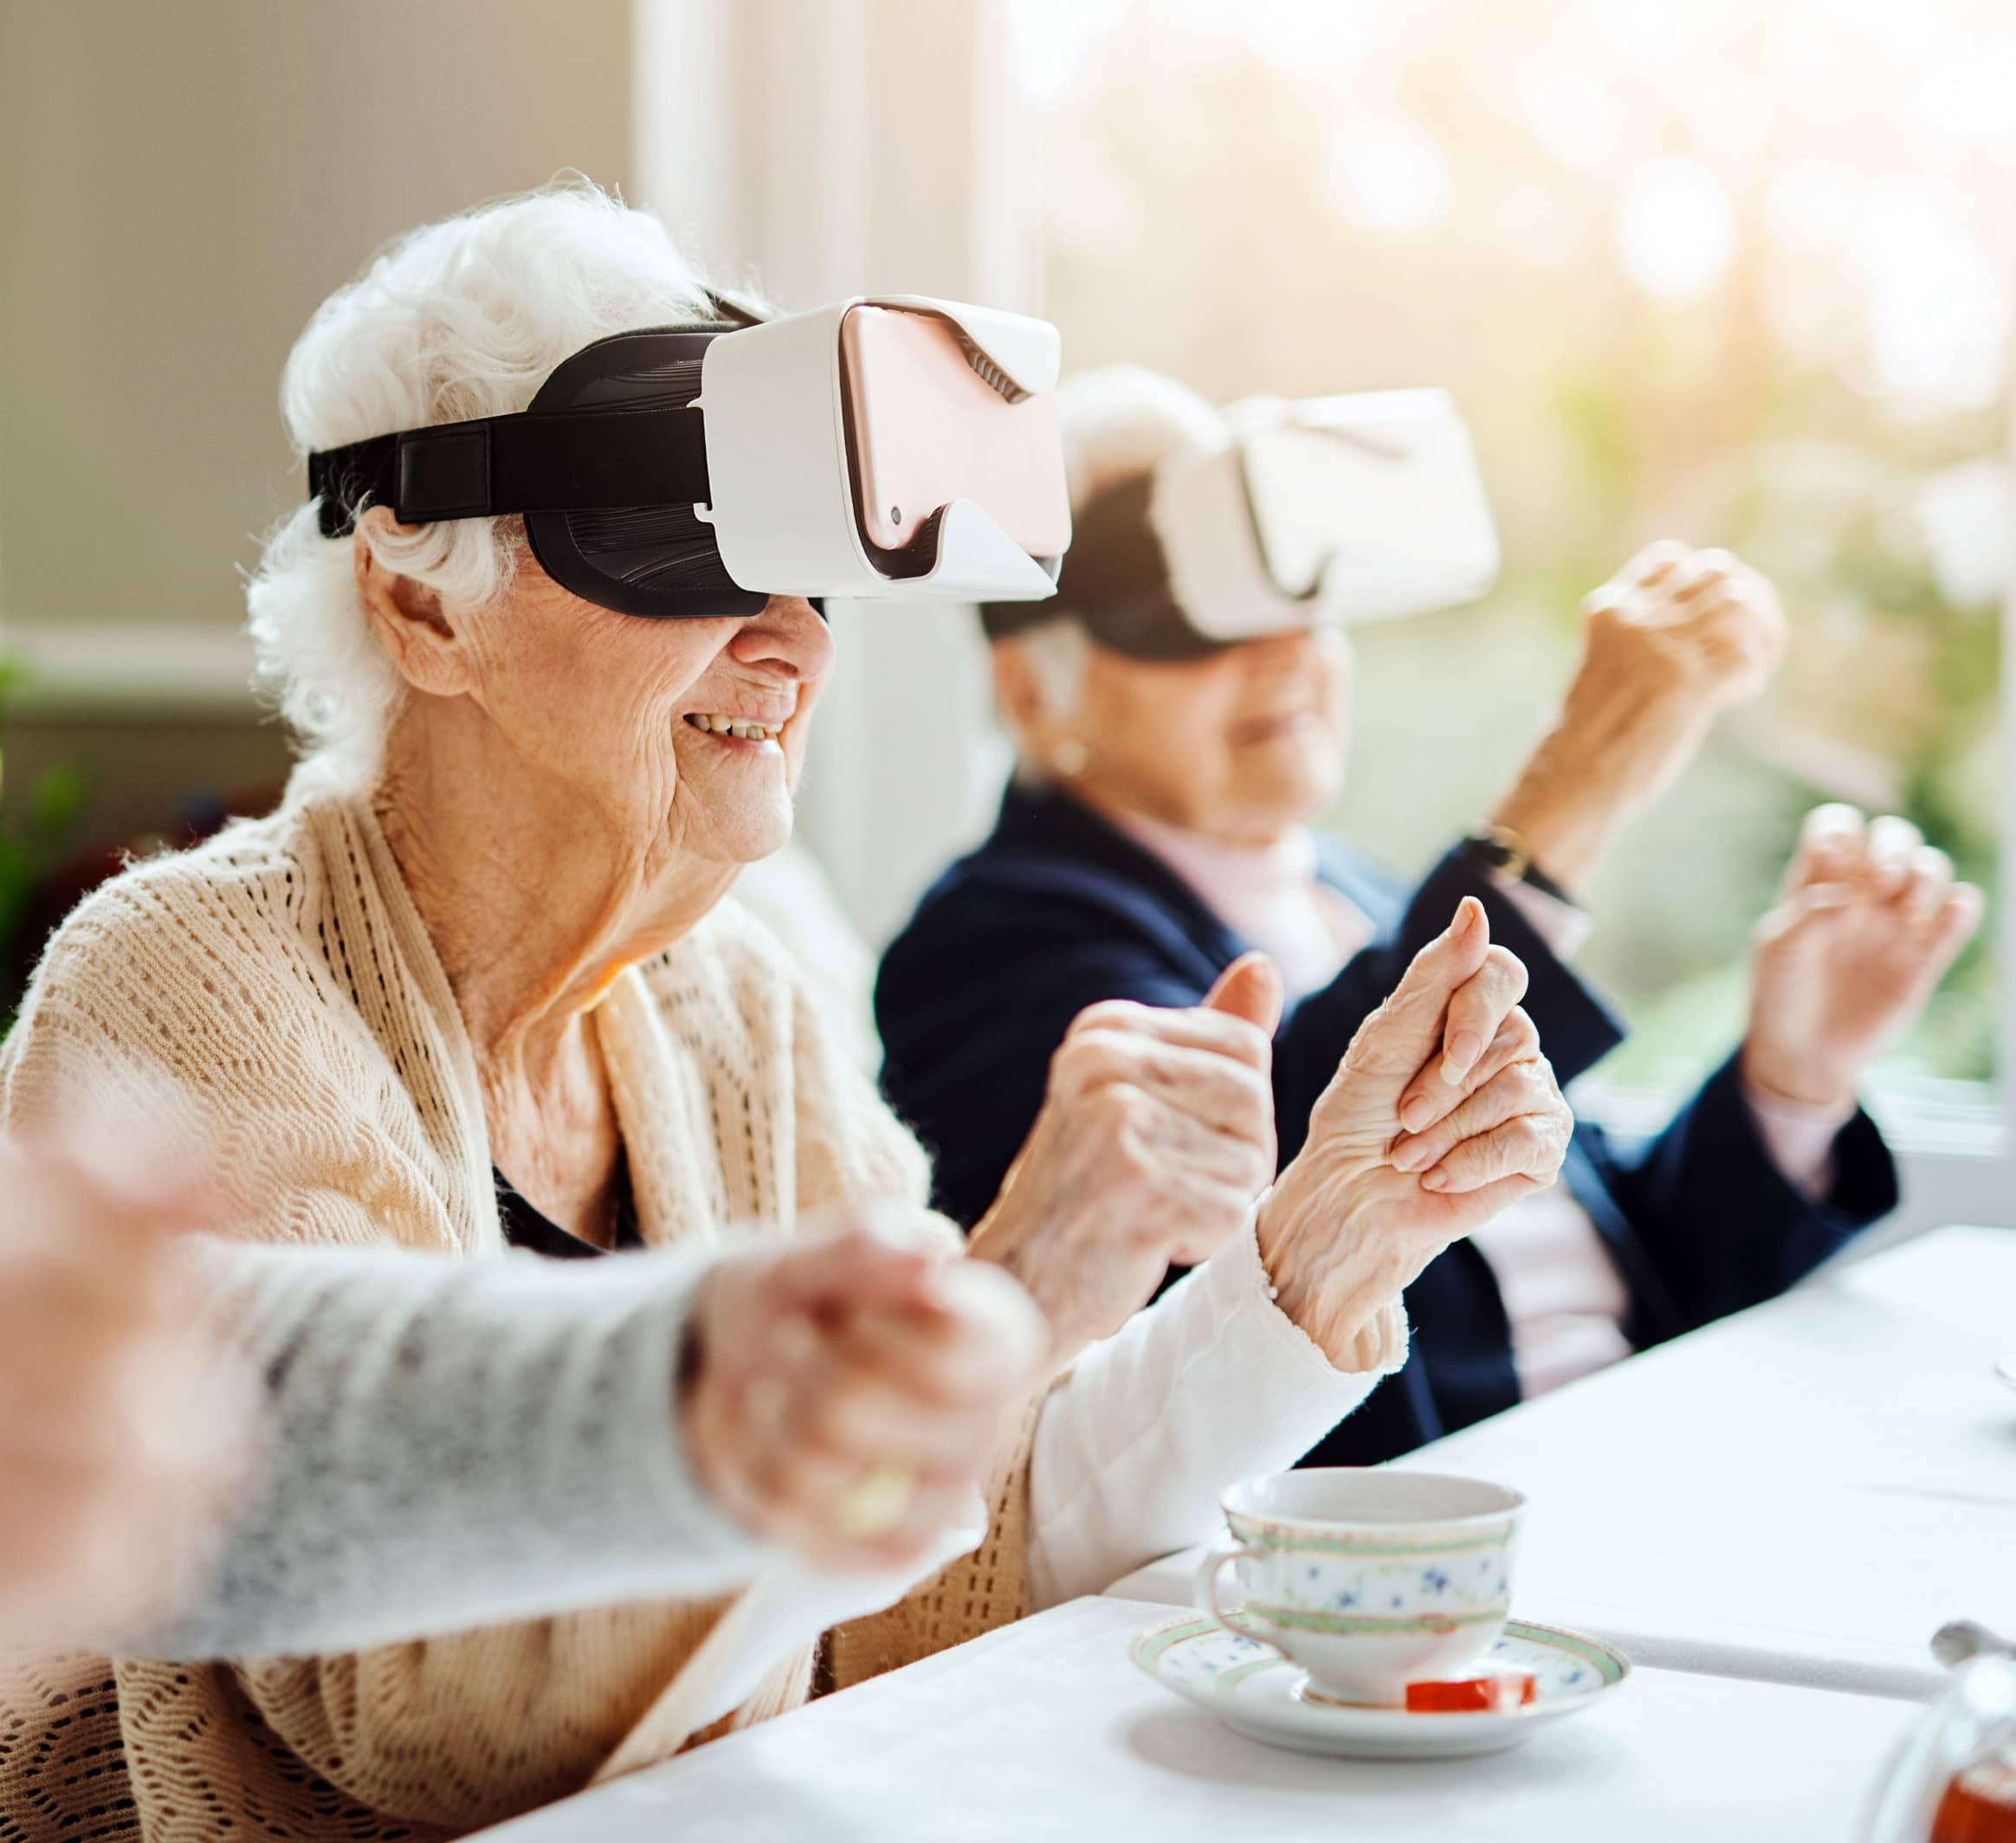 Seniors Can Use Virtual Reality For Travel, Health Issues